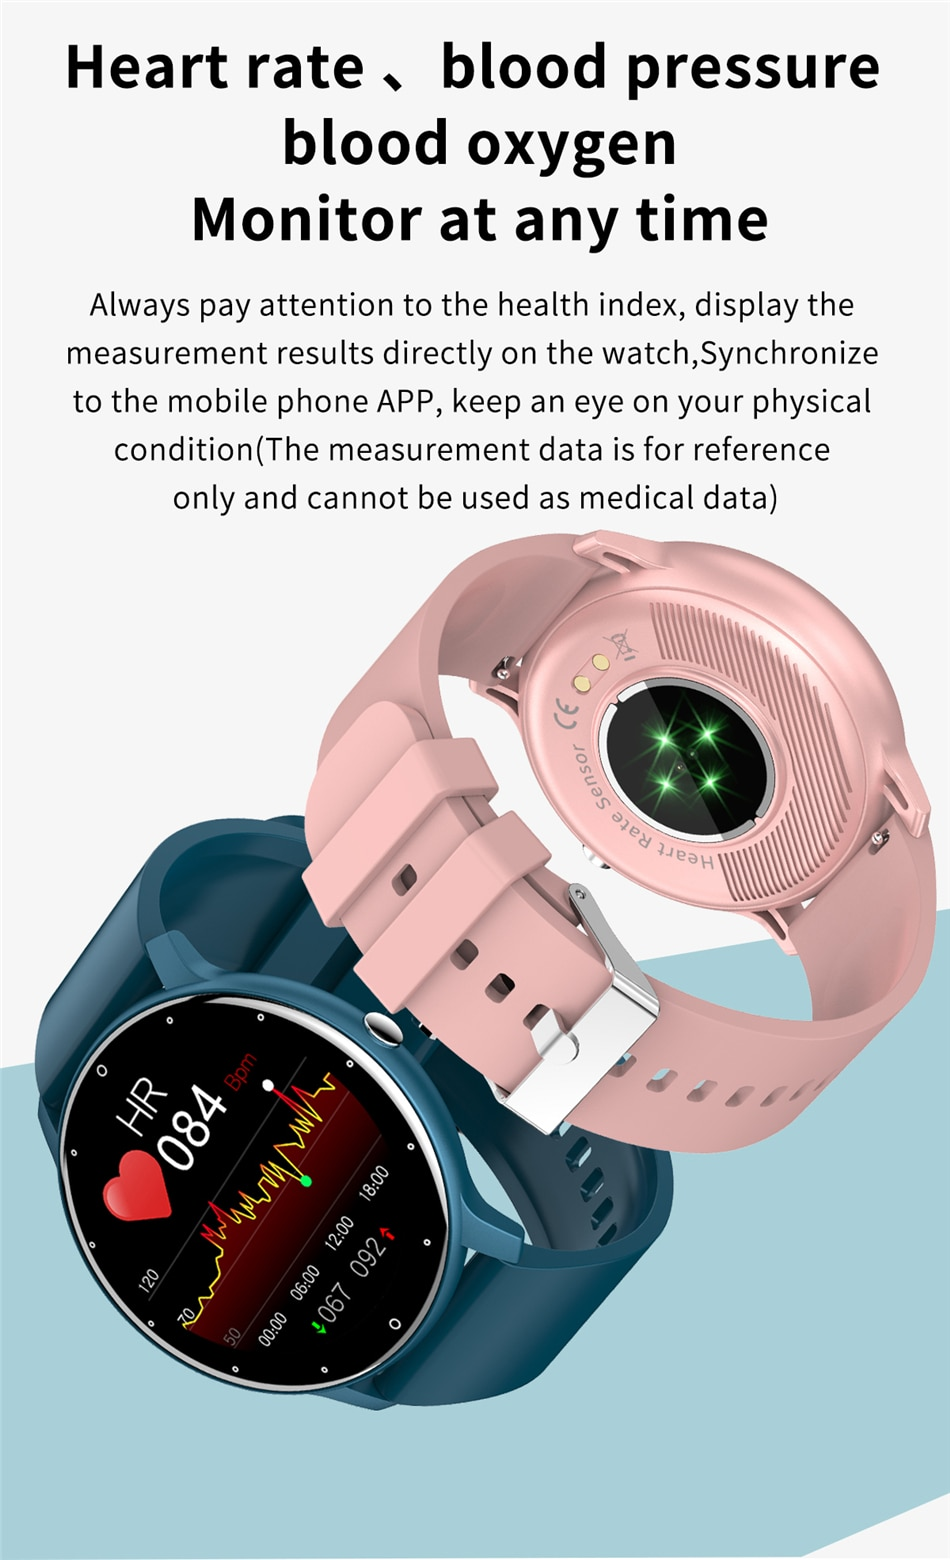 Ha68827b452794452b8321d5d91f3a6b7H - LIGE 2021 New Smart Watch Men Full Touch Screen Sport Fitness Watch IP67 Waterproof Bluetooth For Android ios smartwatch Men box